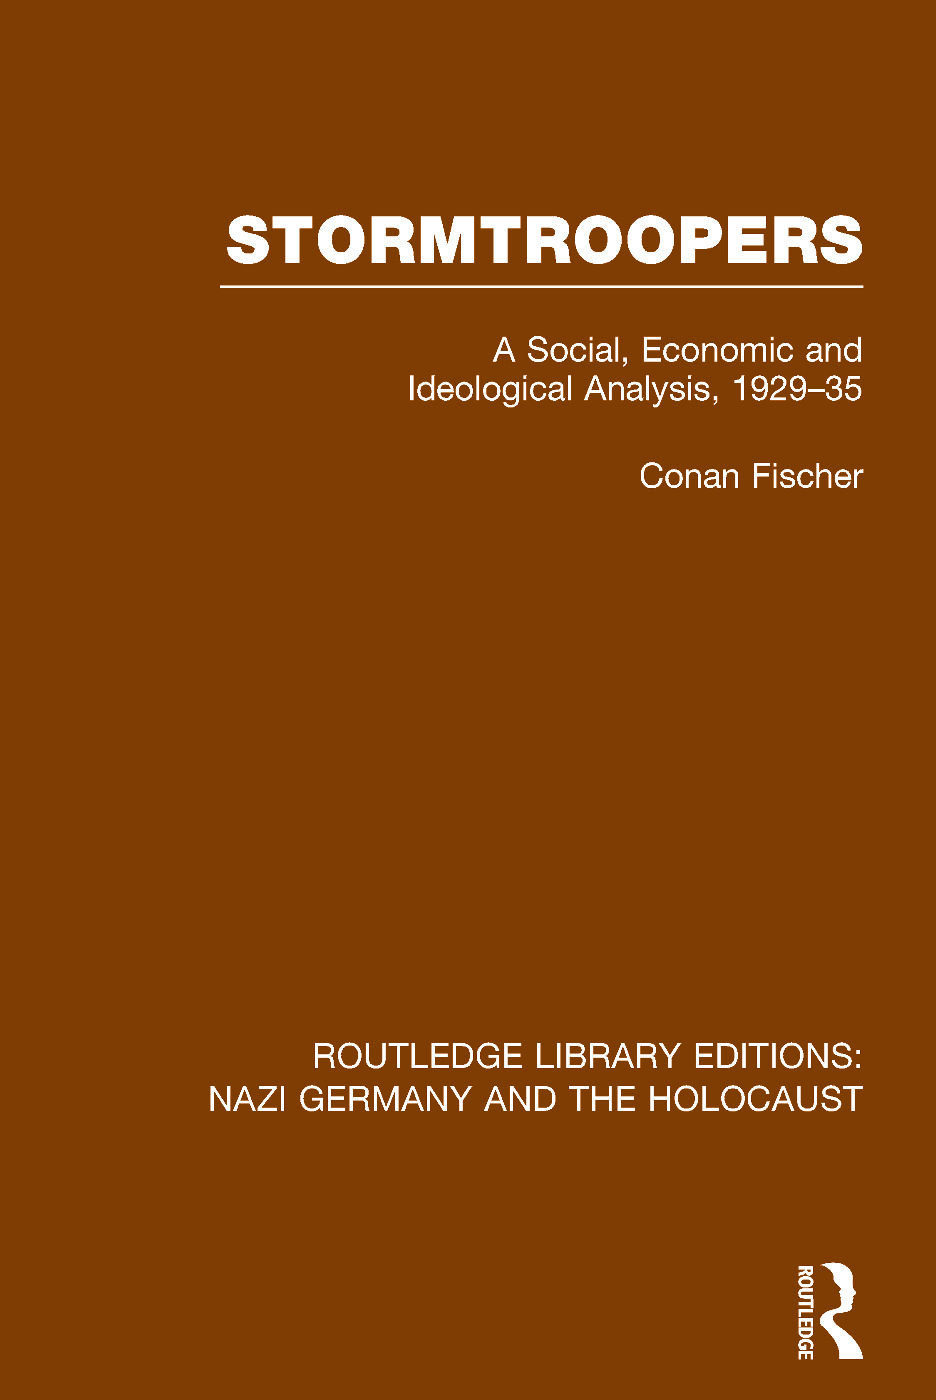 Stormtroopers (RLE Nazi Germany & Holocaust) Pbdirect: A Social, Economic and Ideological Analysis 1929-35 book cover